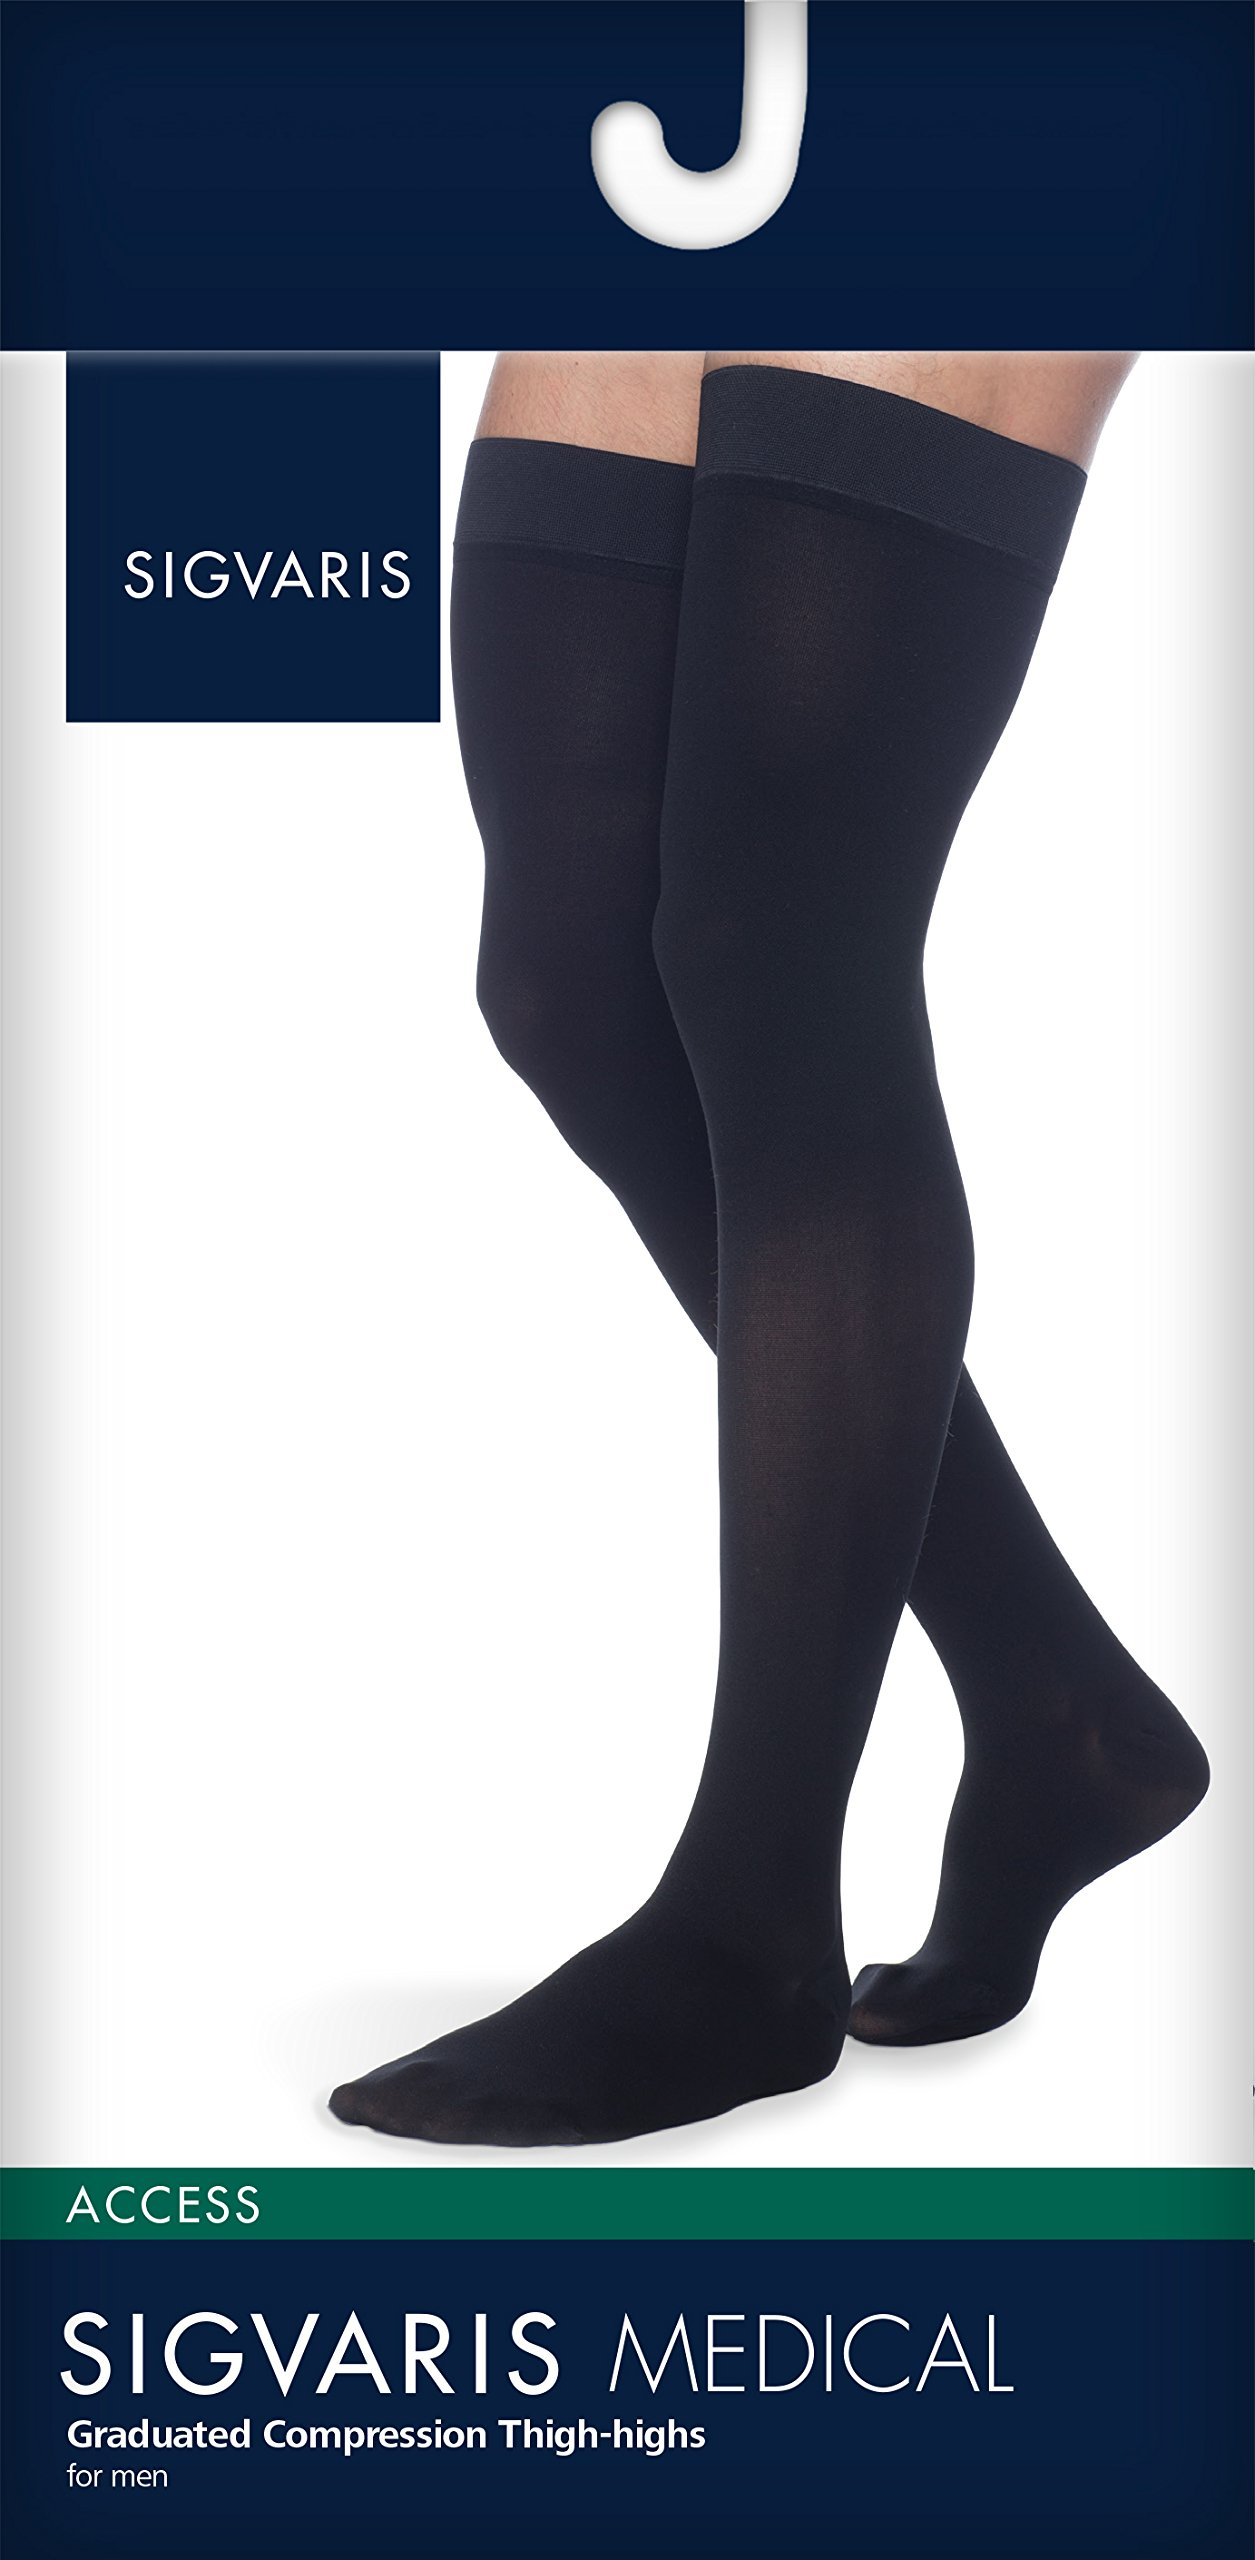 SIGVARIS Men's Access 970 Closed-Toe Thigh High Medical Compression 20-30mmHg by SIGVARIS (Image #1)